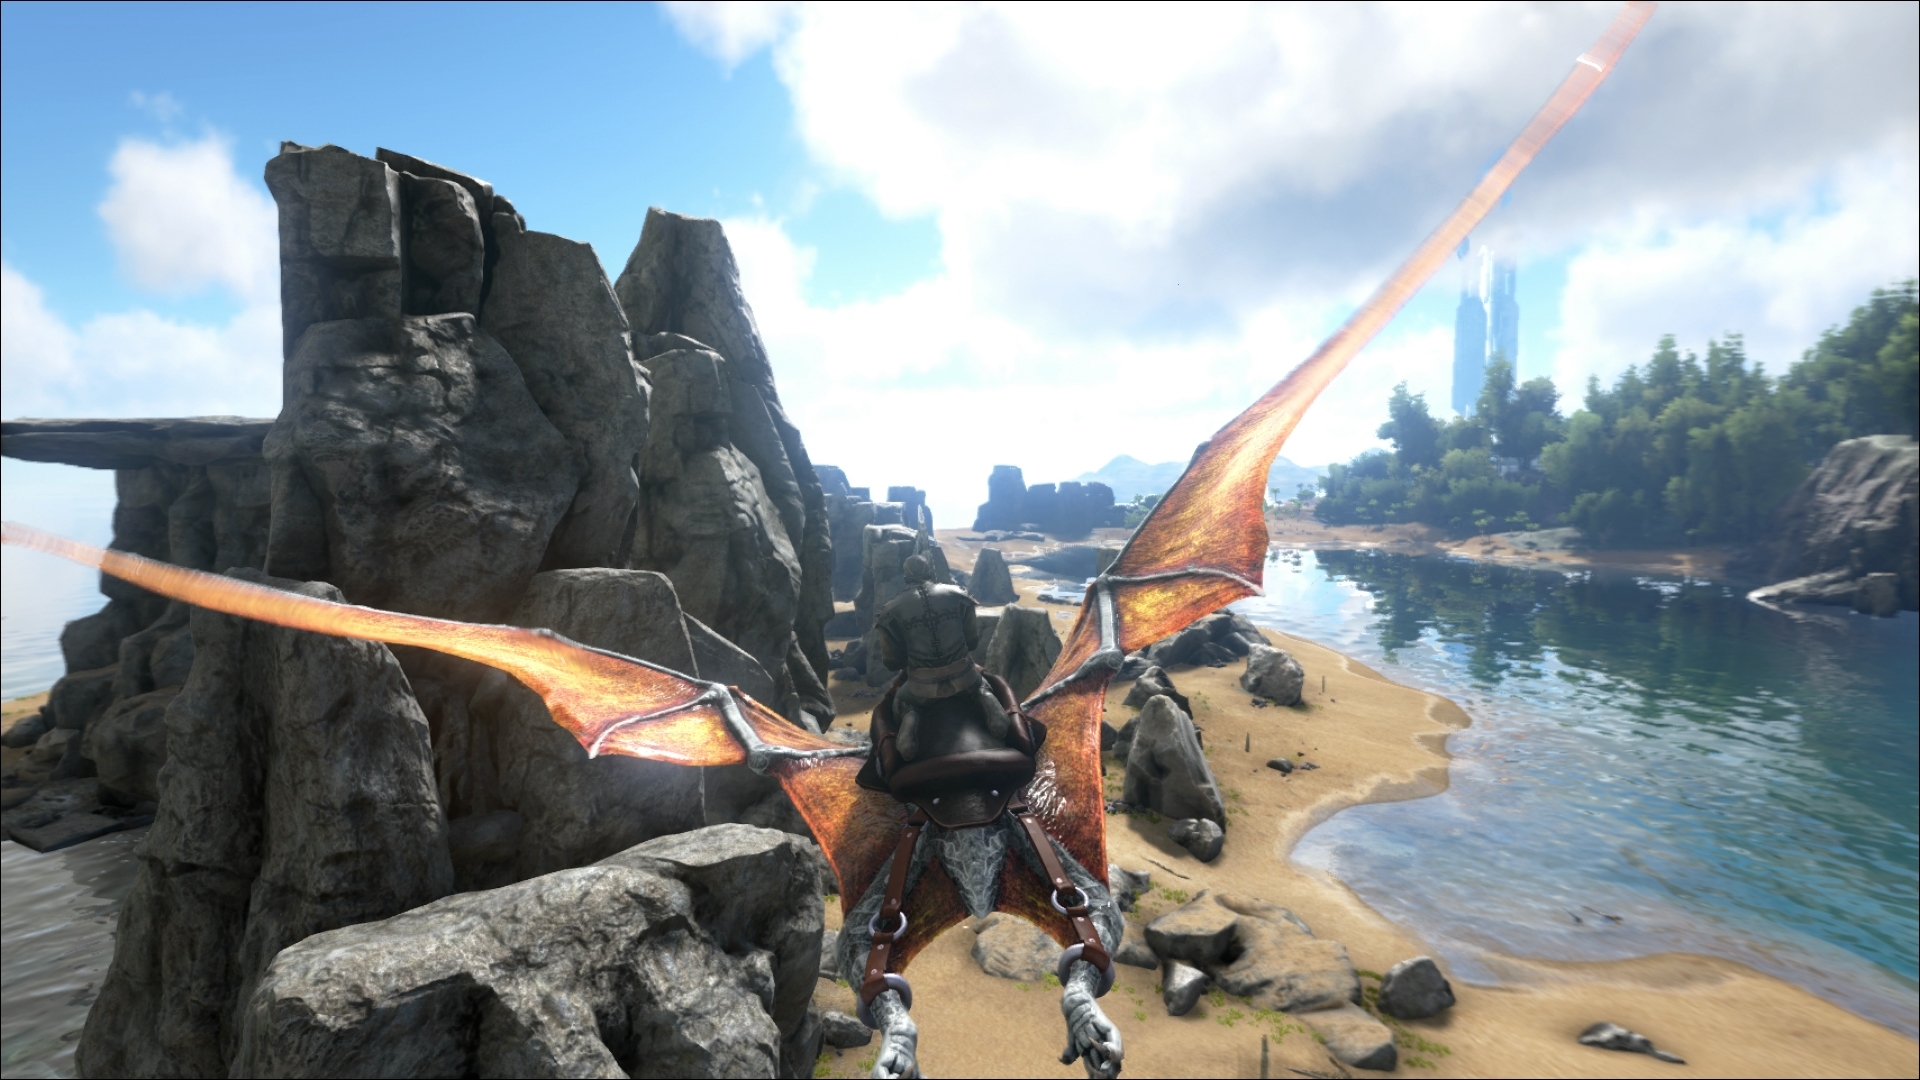 ARK: Survival Evolved Windows, Mac, Linux, VR, PS4 game